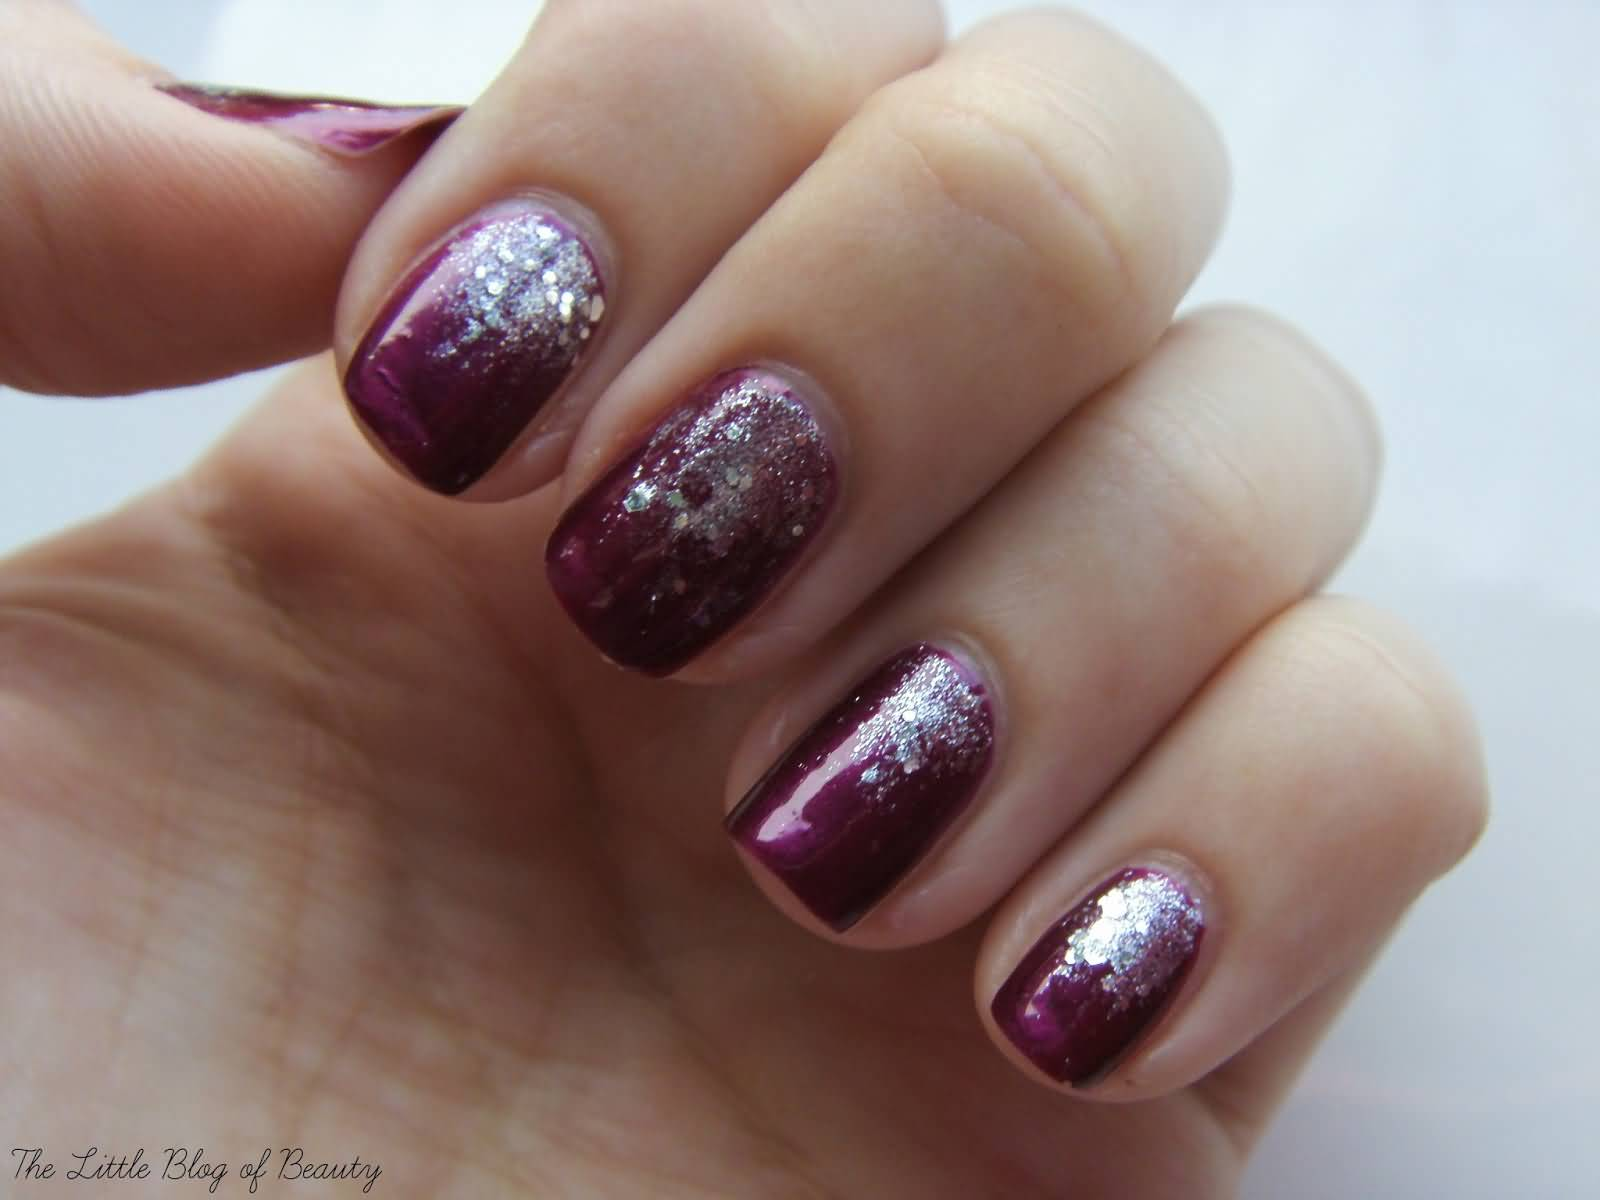 Generous Nail Art Birds Tall Nail Polish Sets Opi Flat Nail Polish Pinata Opi Nail Polish Shades Youthful Revlon Nail Polish Review BrownPhotos Of Nail Art Ideas Maroon Nail Art Tumblr   Nail Art Ideas